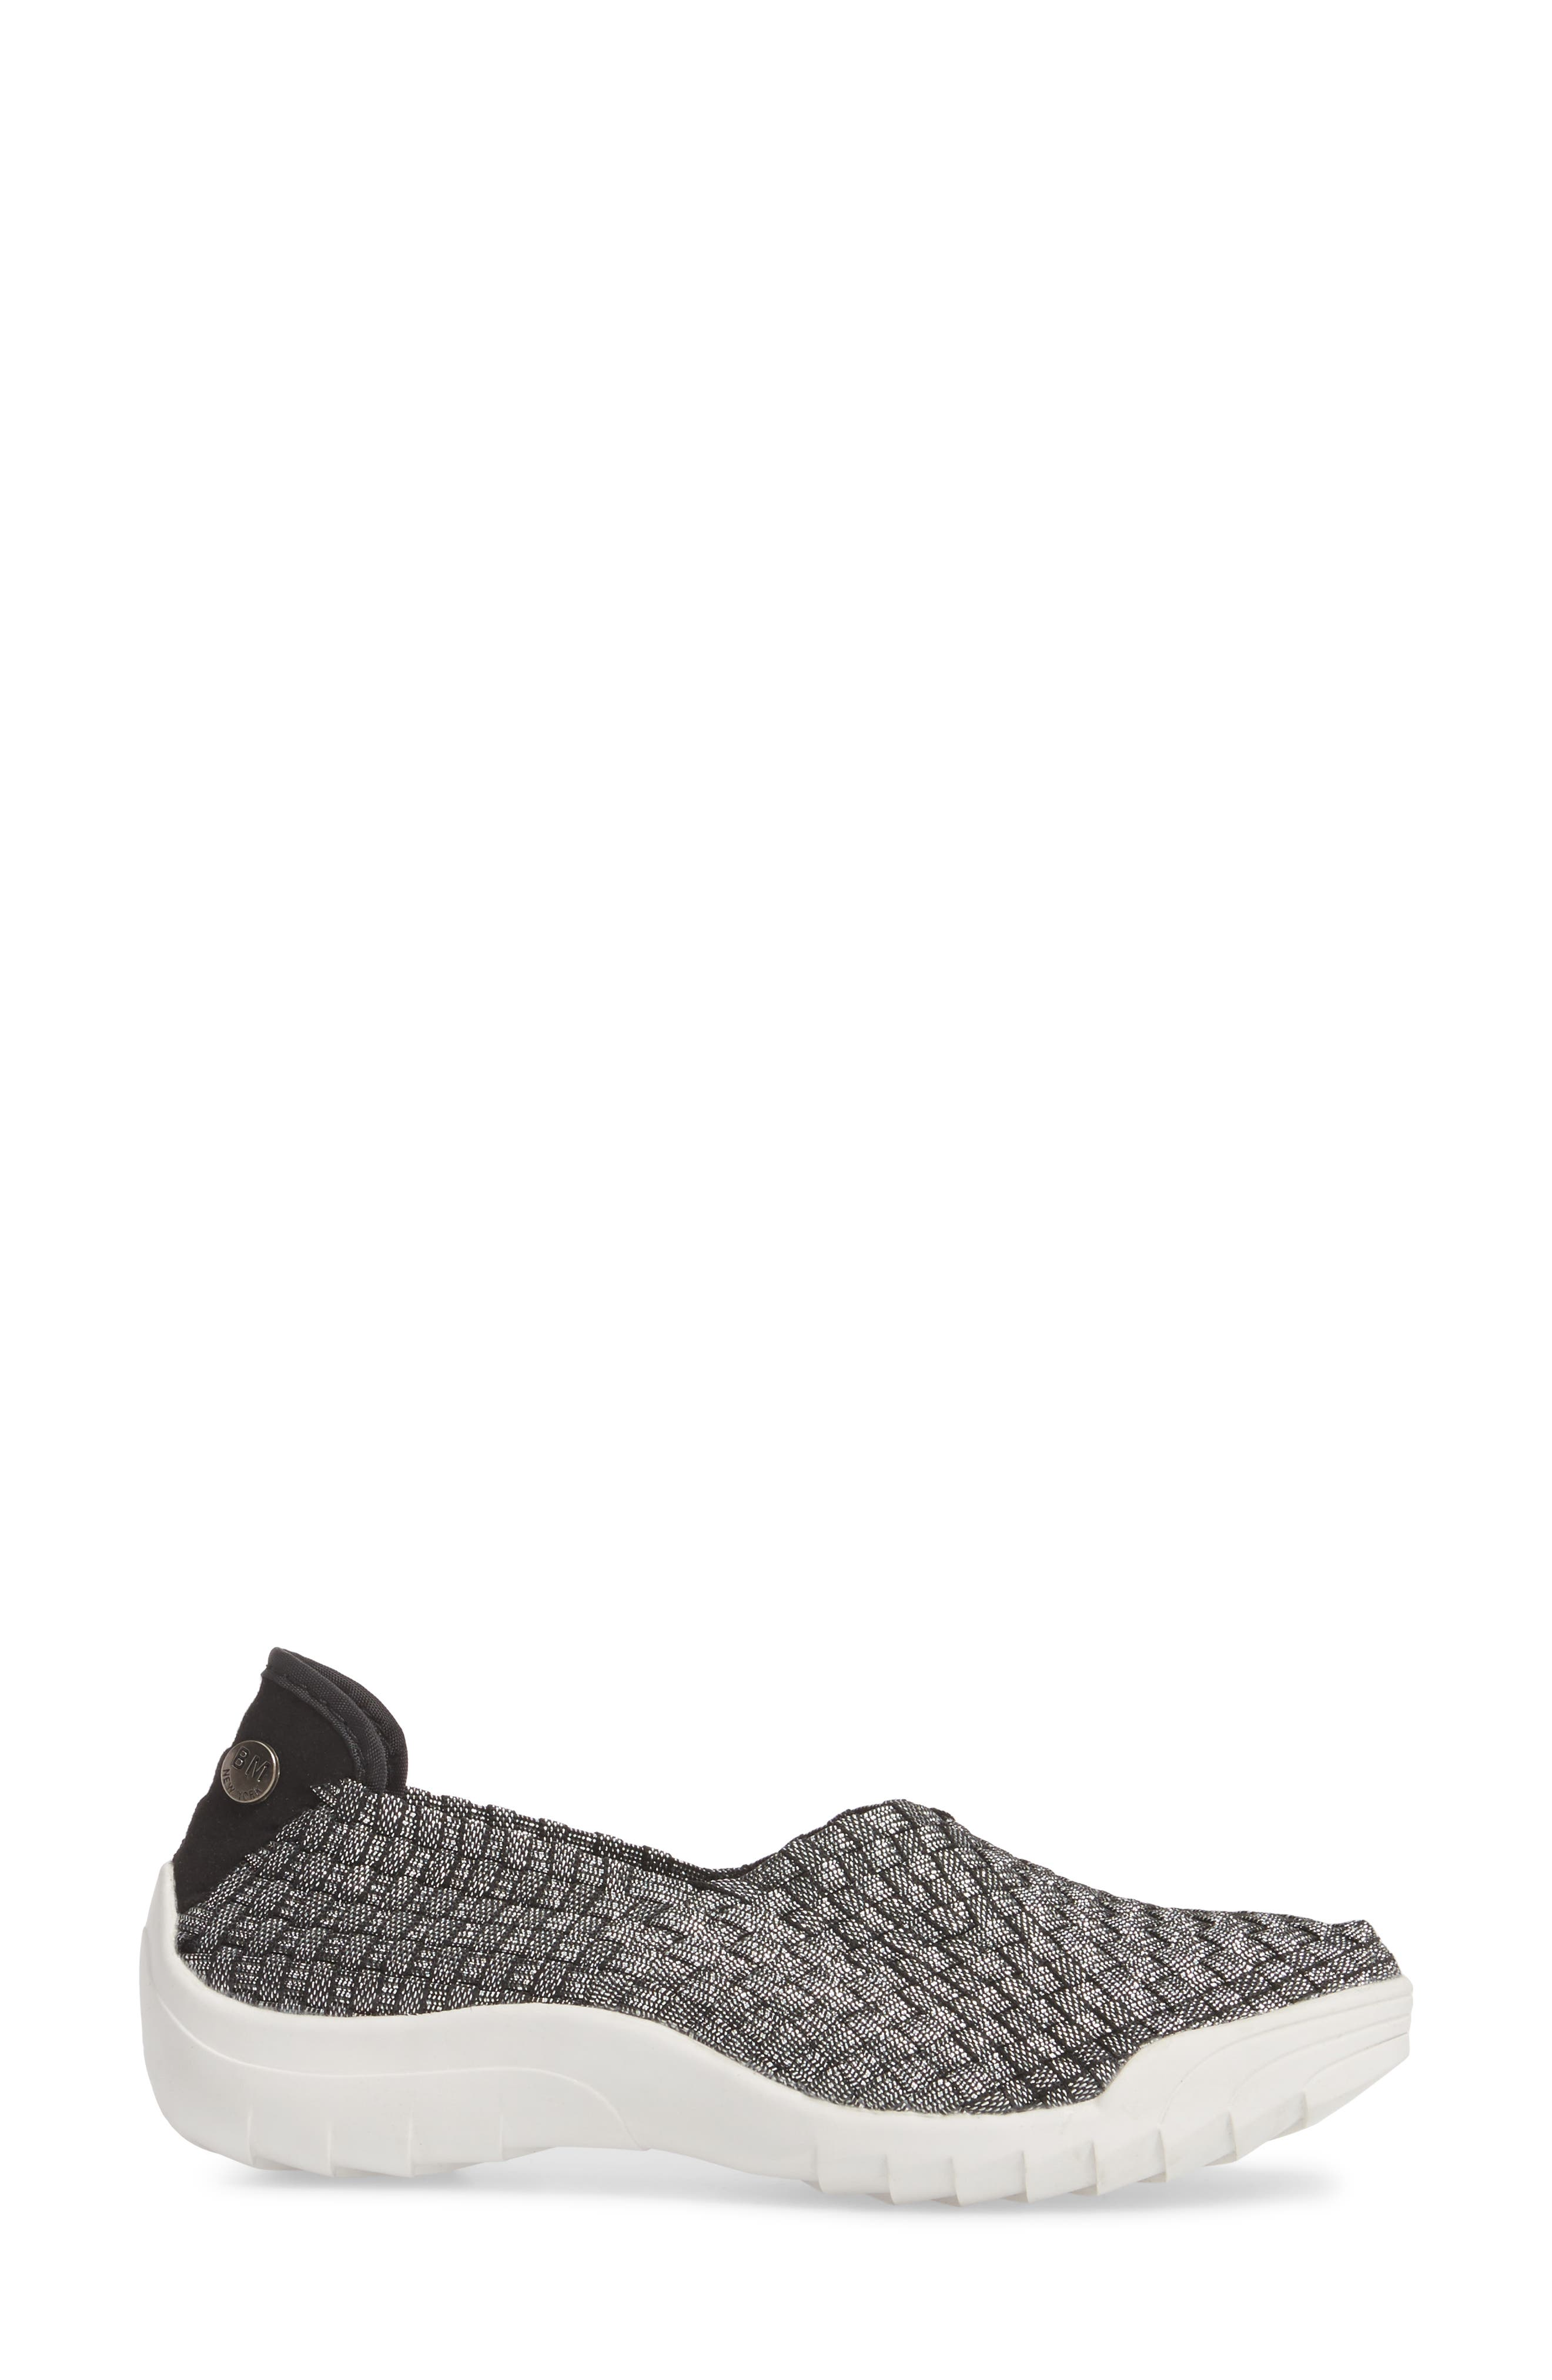 Rigged Fly Slip-On Sneaker,                             Alternate thumbnail 3, color,                             BLACK SHIMMER